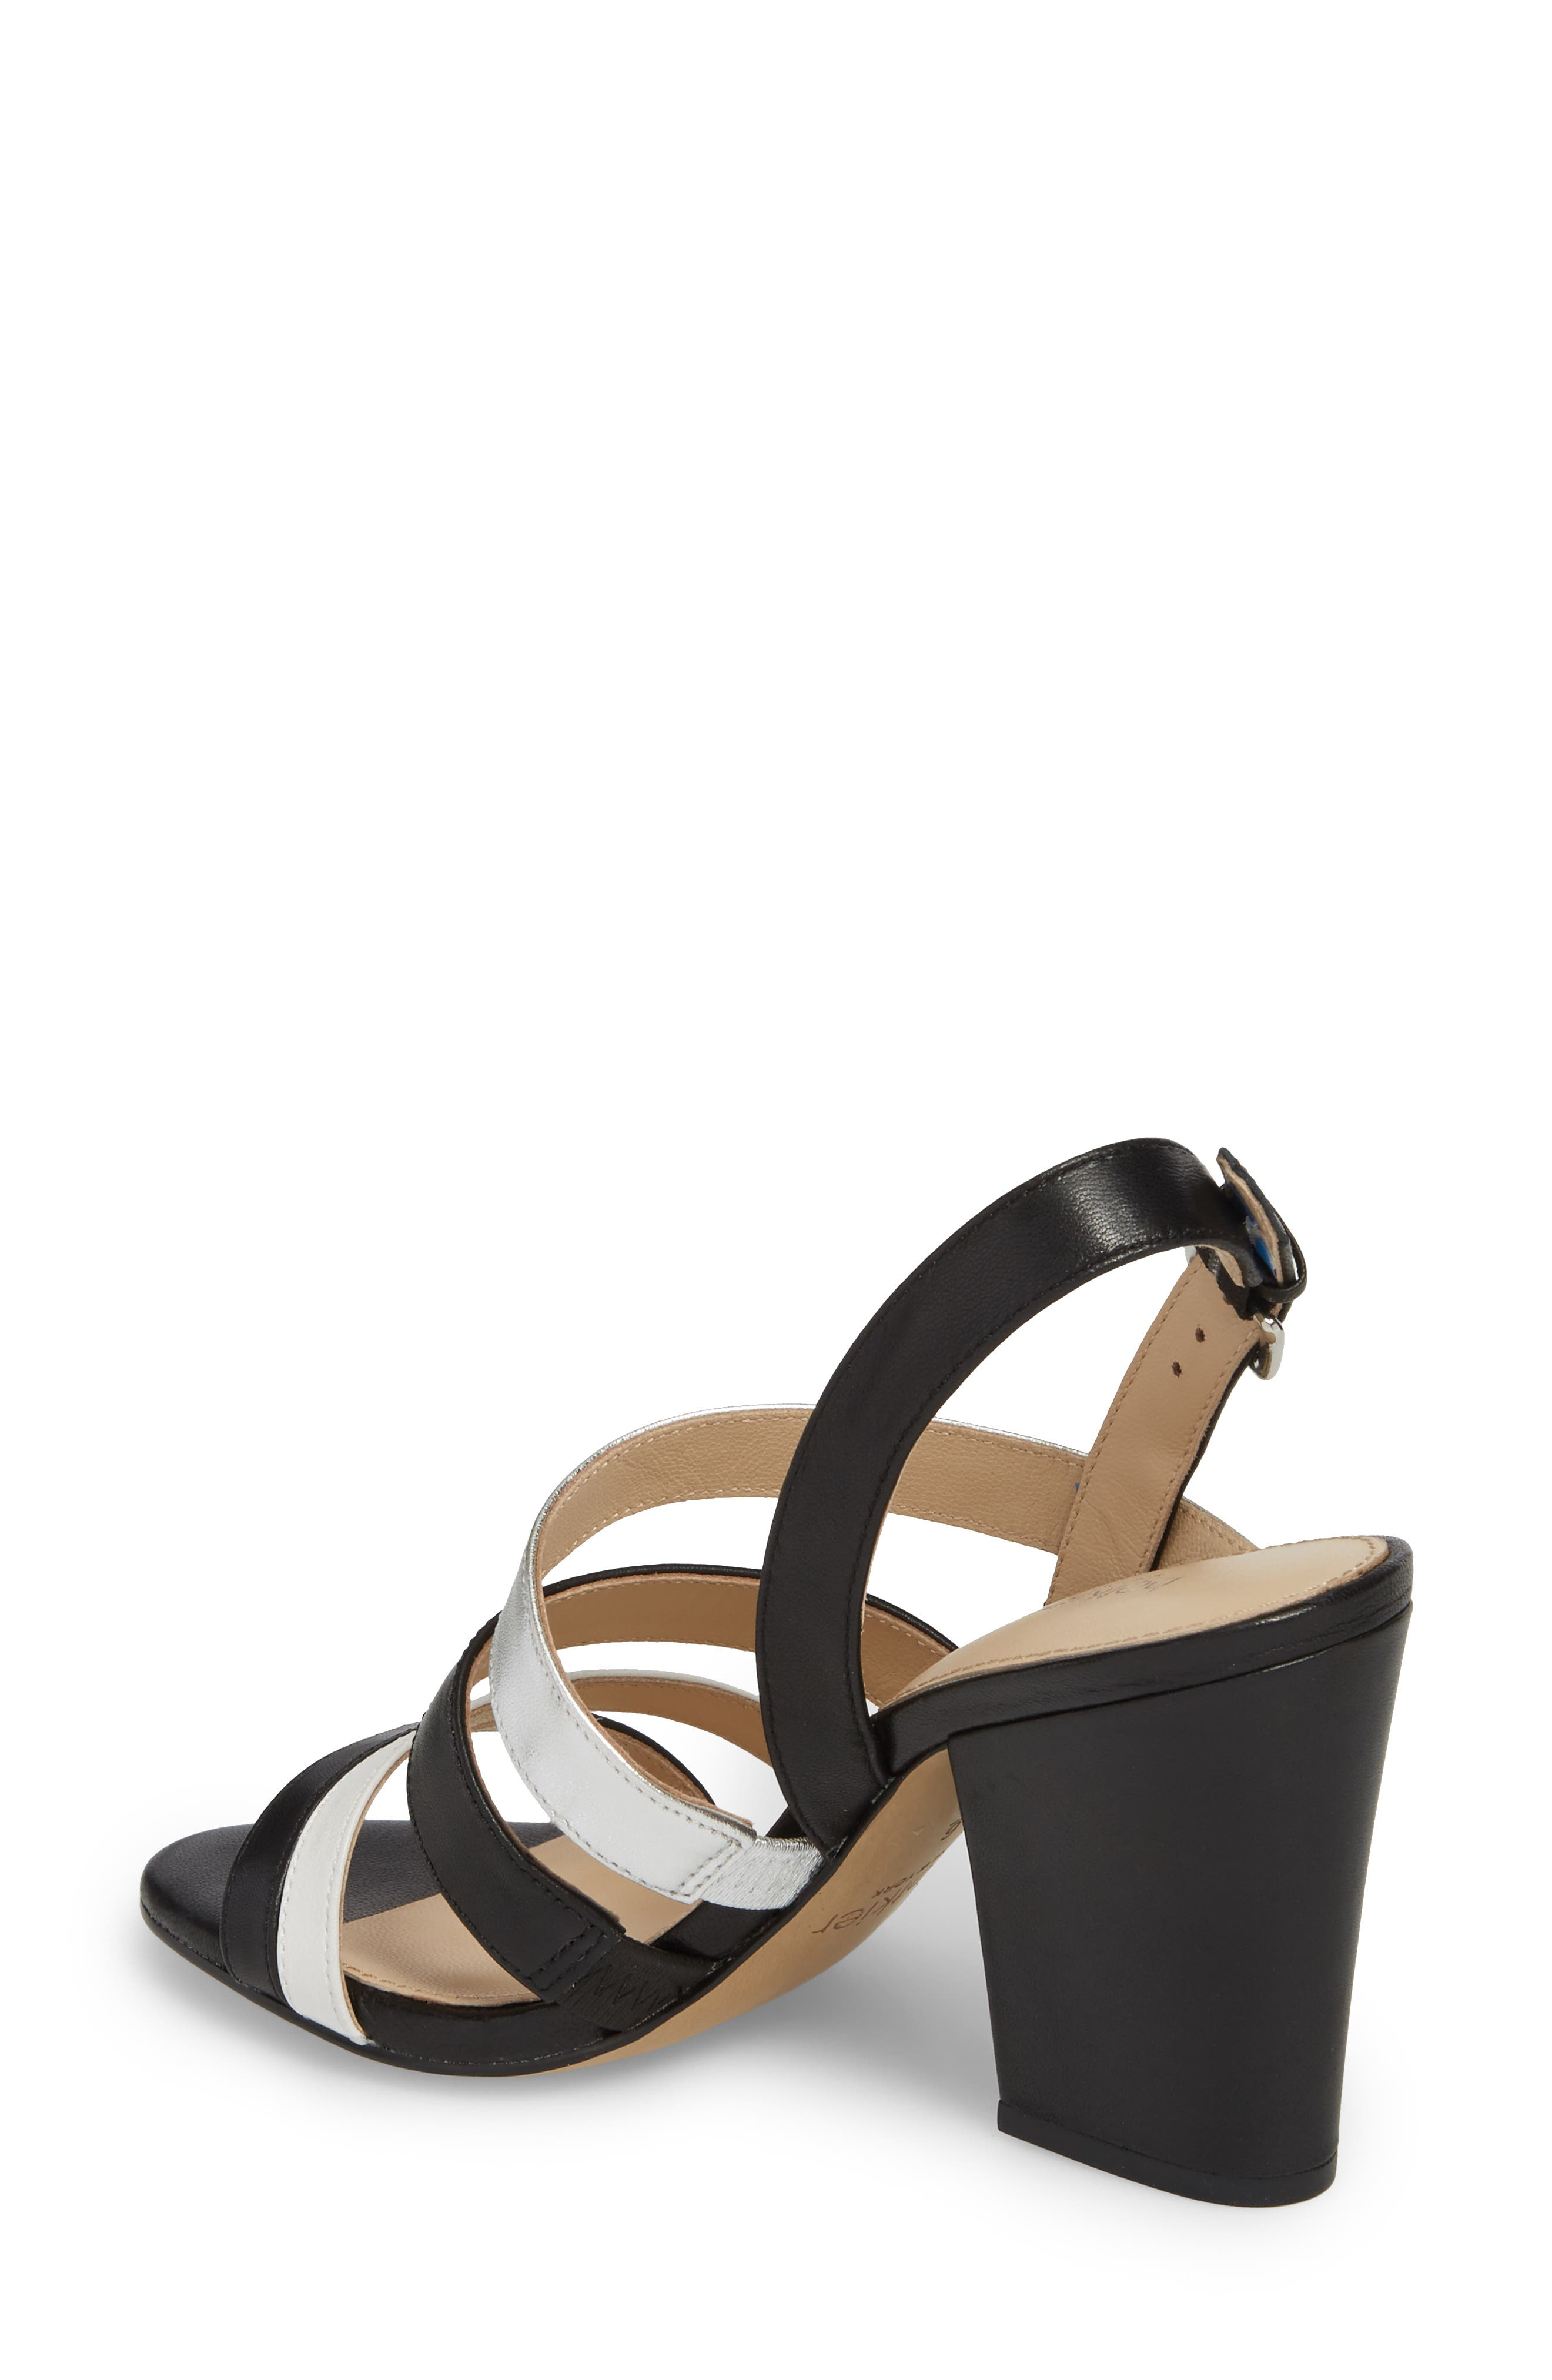 Sera Sandal,                             Alternate thumbnail 2, color,                             Black Multi Leather